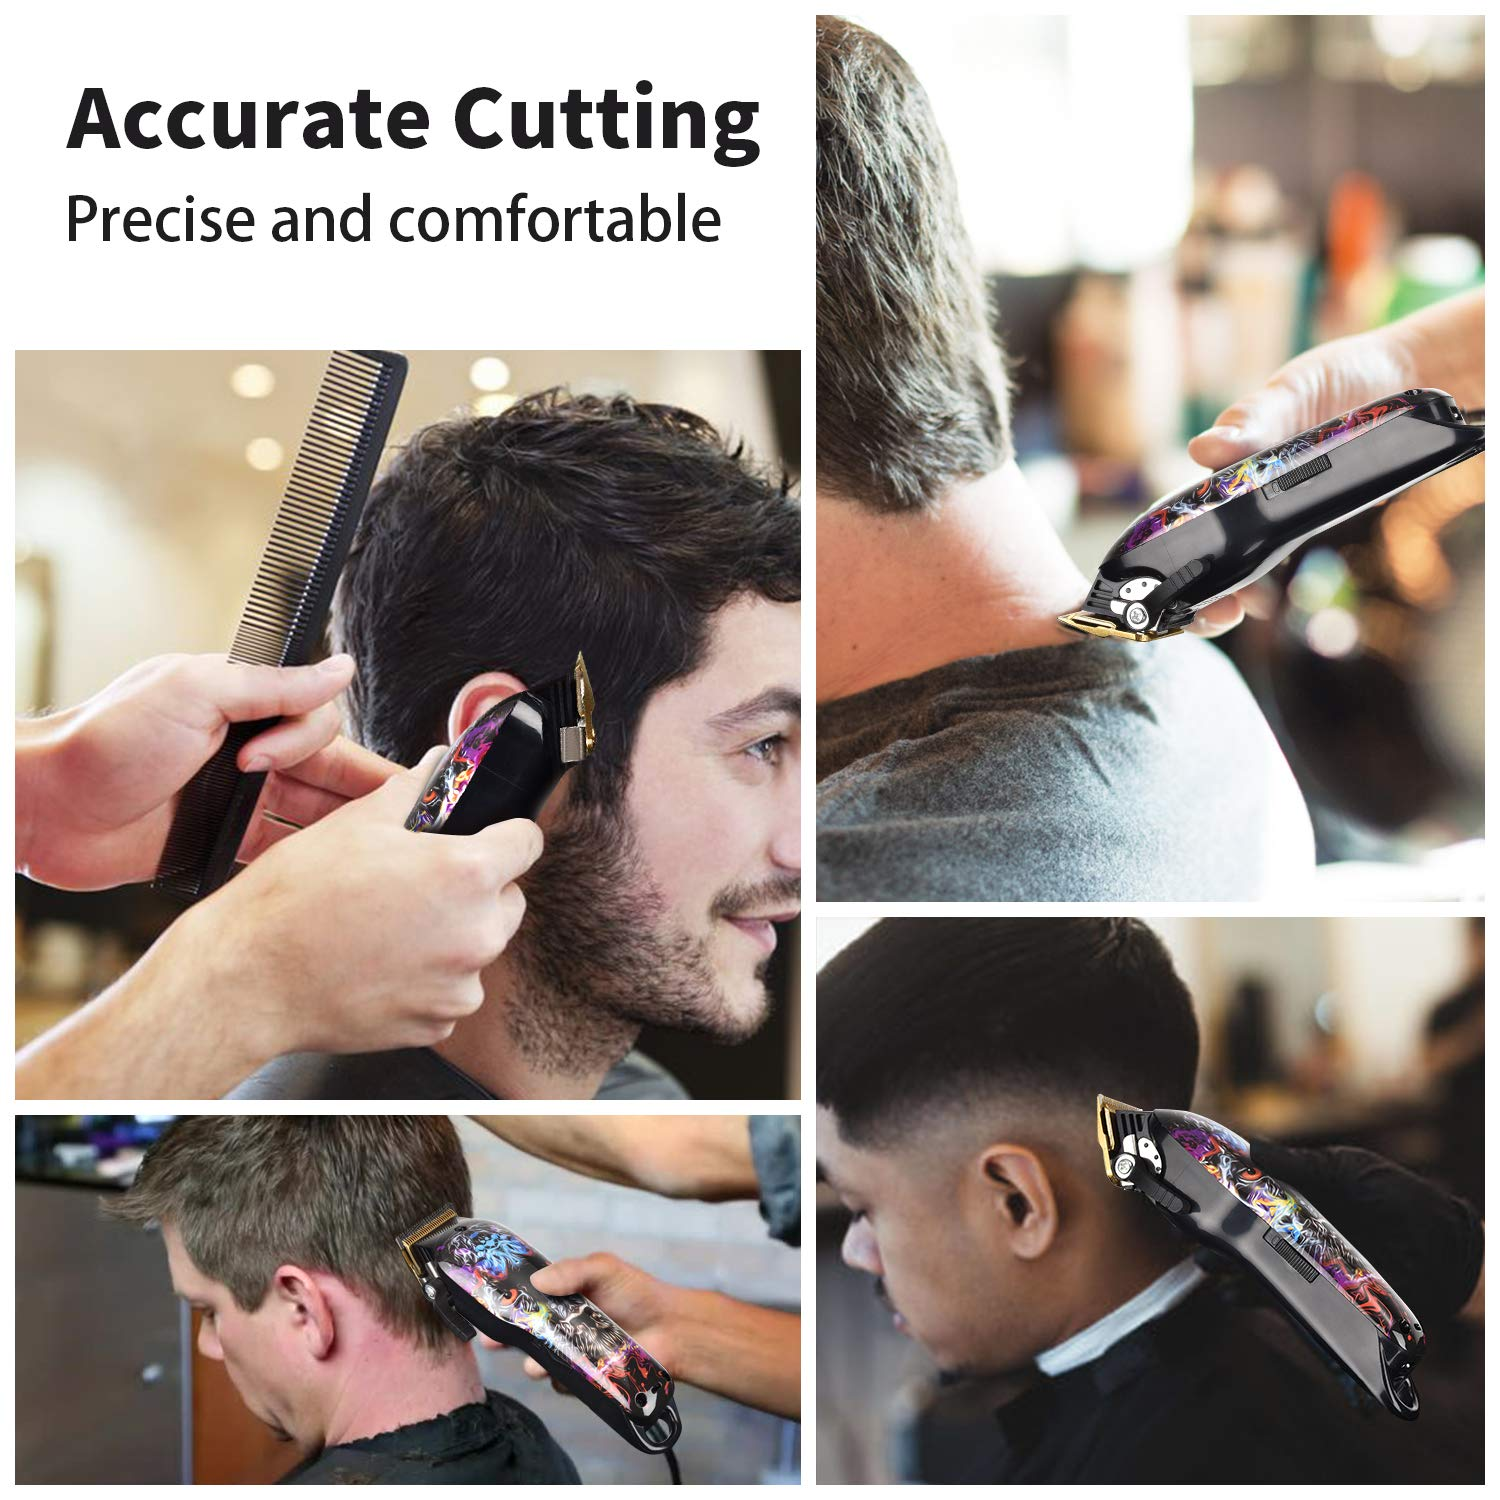 Cordless Hair Trimmer Pro Hair Clippers Beard Trimmer for Men Haircut Kit Cordless USB Rechargeable Barber Electric Shavers Hair Removal with 2000mAh Lithium Ion,Guide Combs (Clipper)